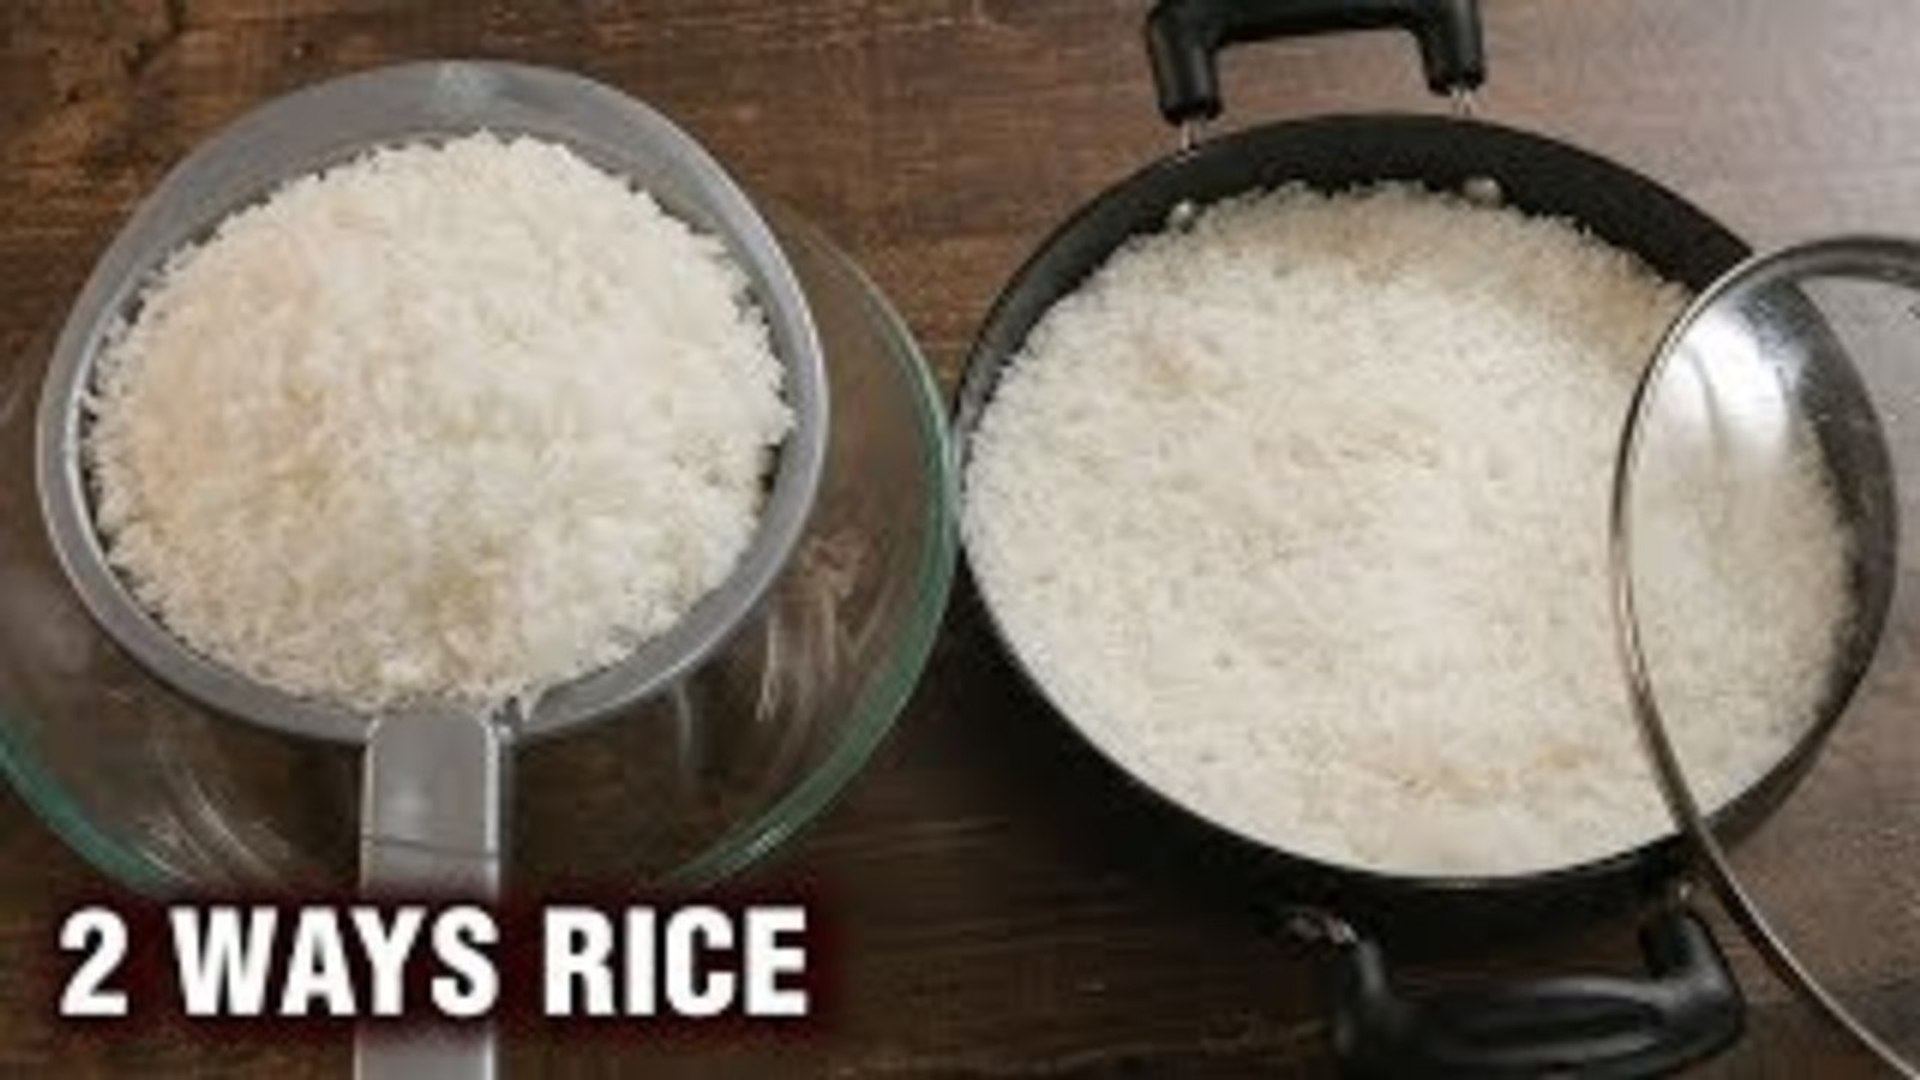 How To Cook Perfect Rice - 2 Ways Rice Cooking - Easy To Make Rice - Basic Cooking - Varun